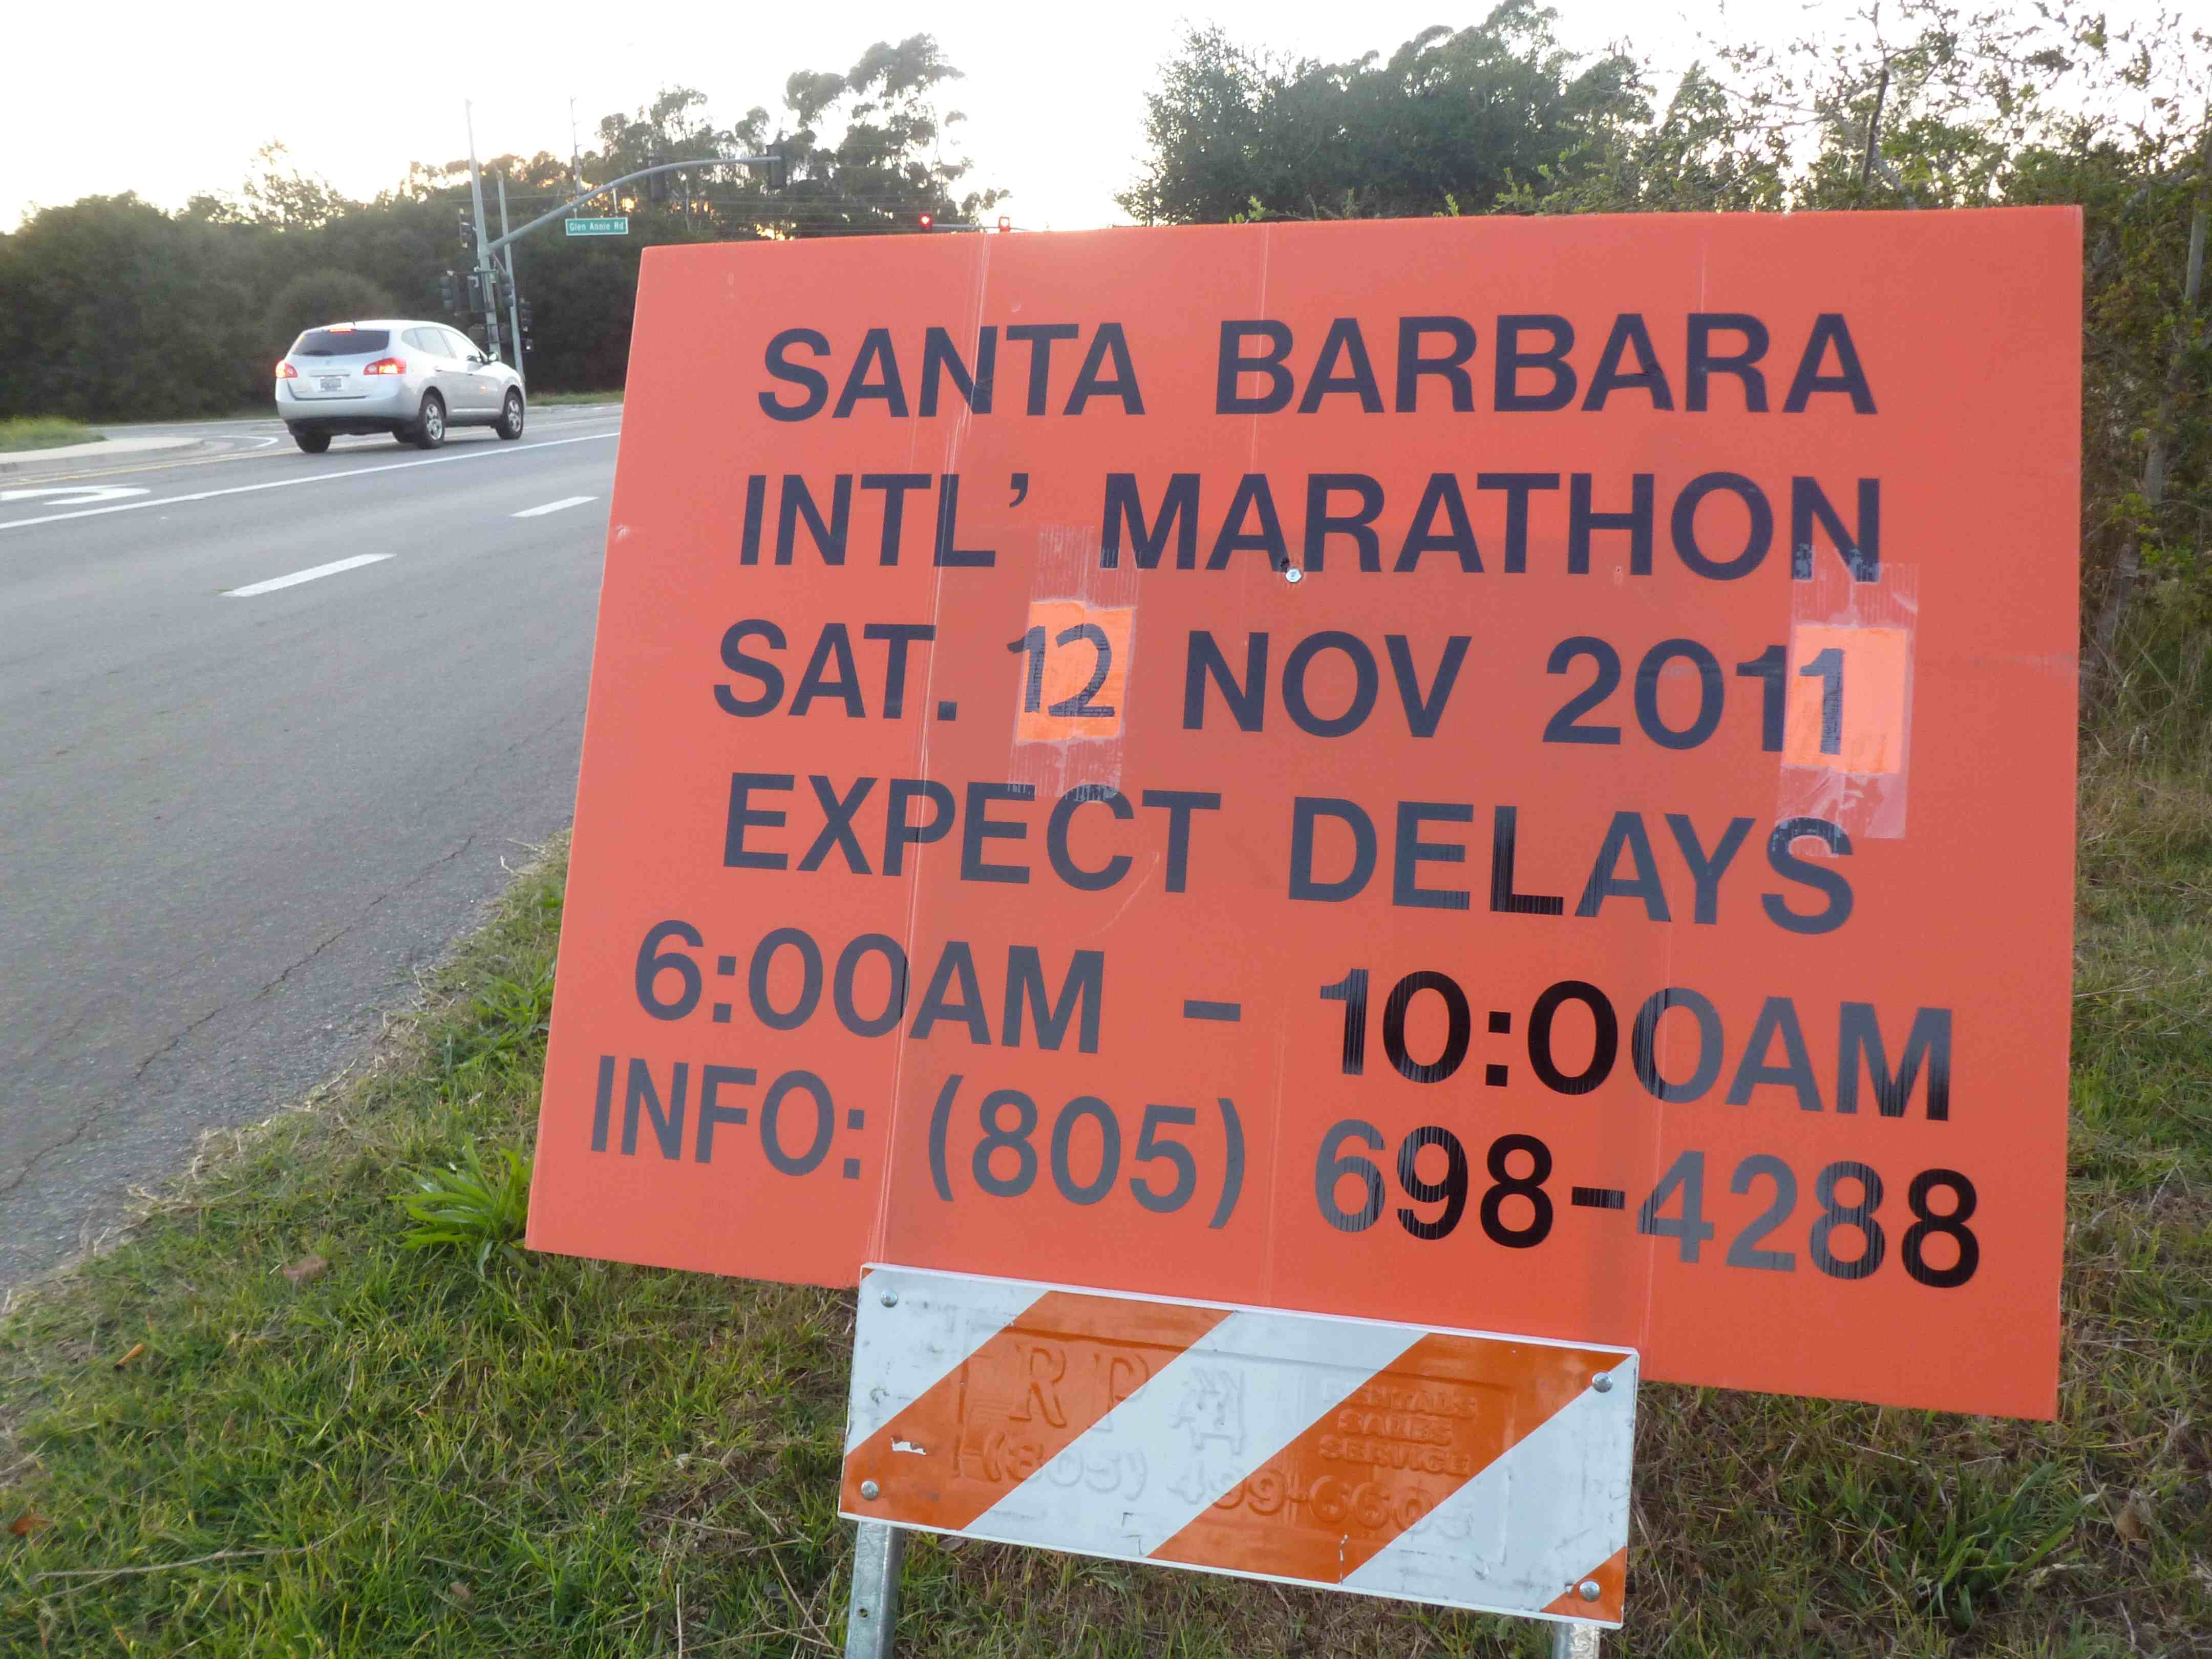 Marathon sign WeissCrax: Cant stop fever to do SB Half Marathon